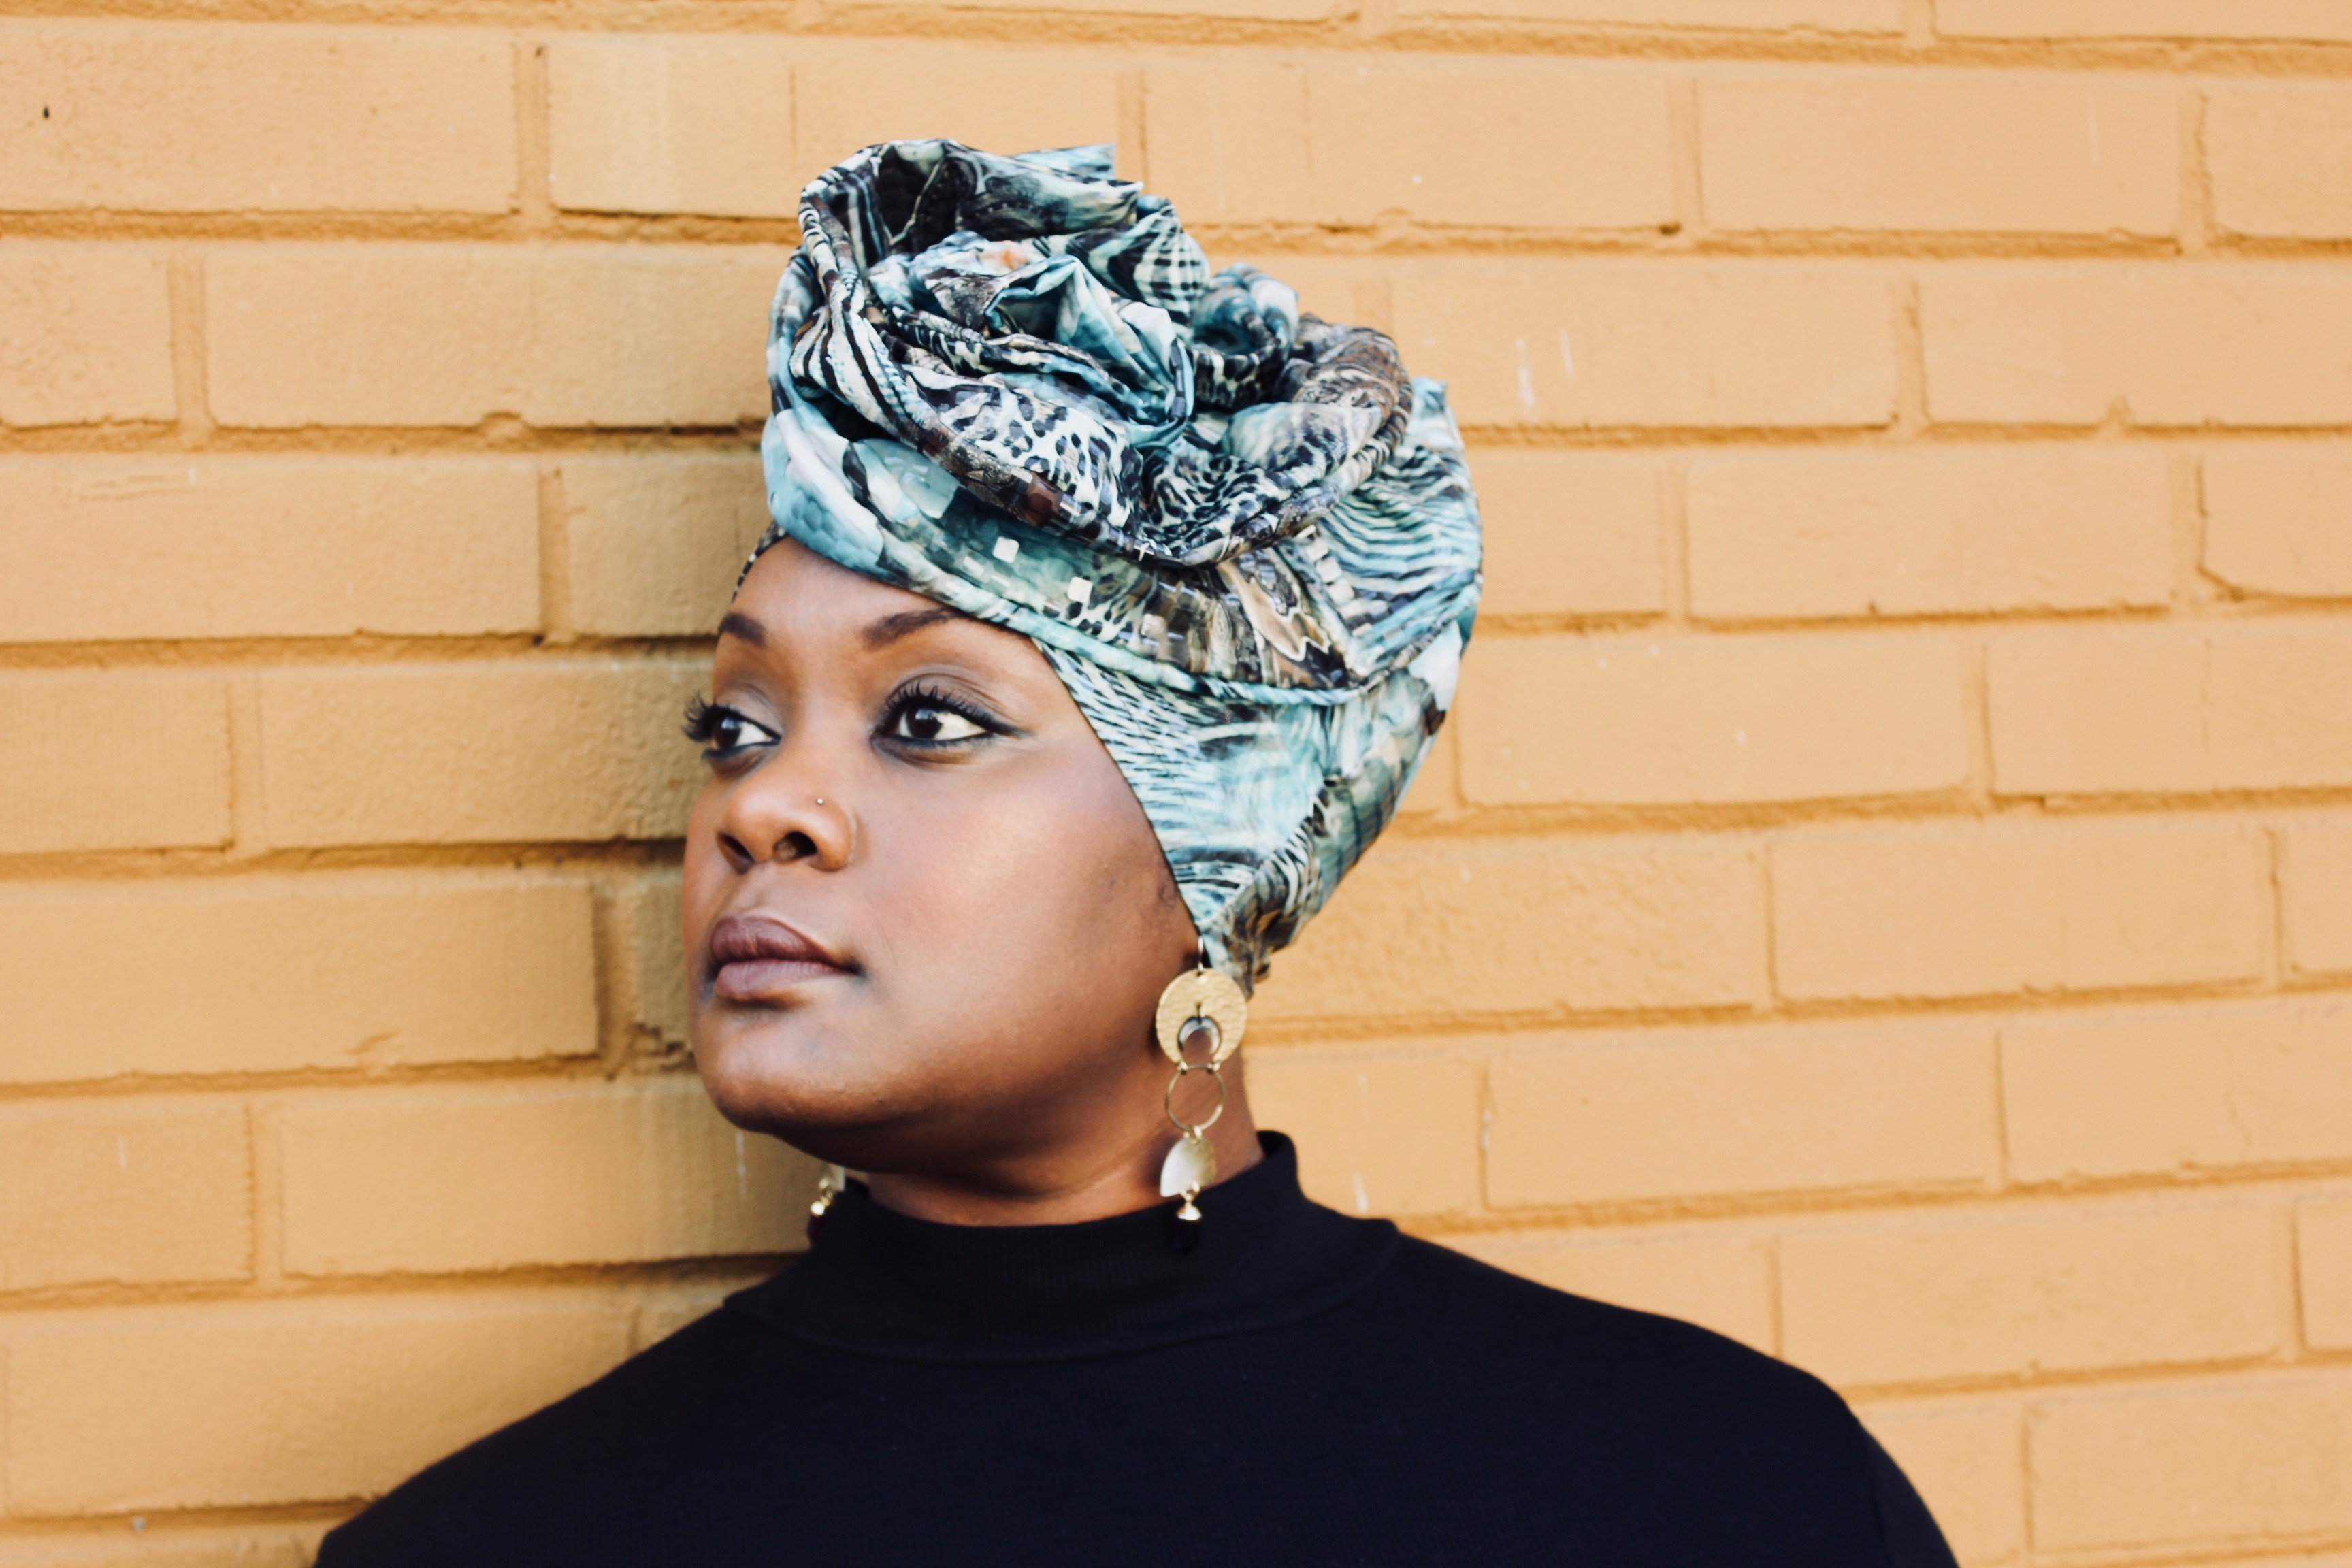 Kyshona with a colorful headscarf standing in front of brick